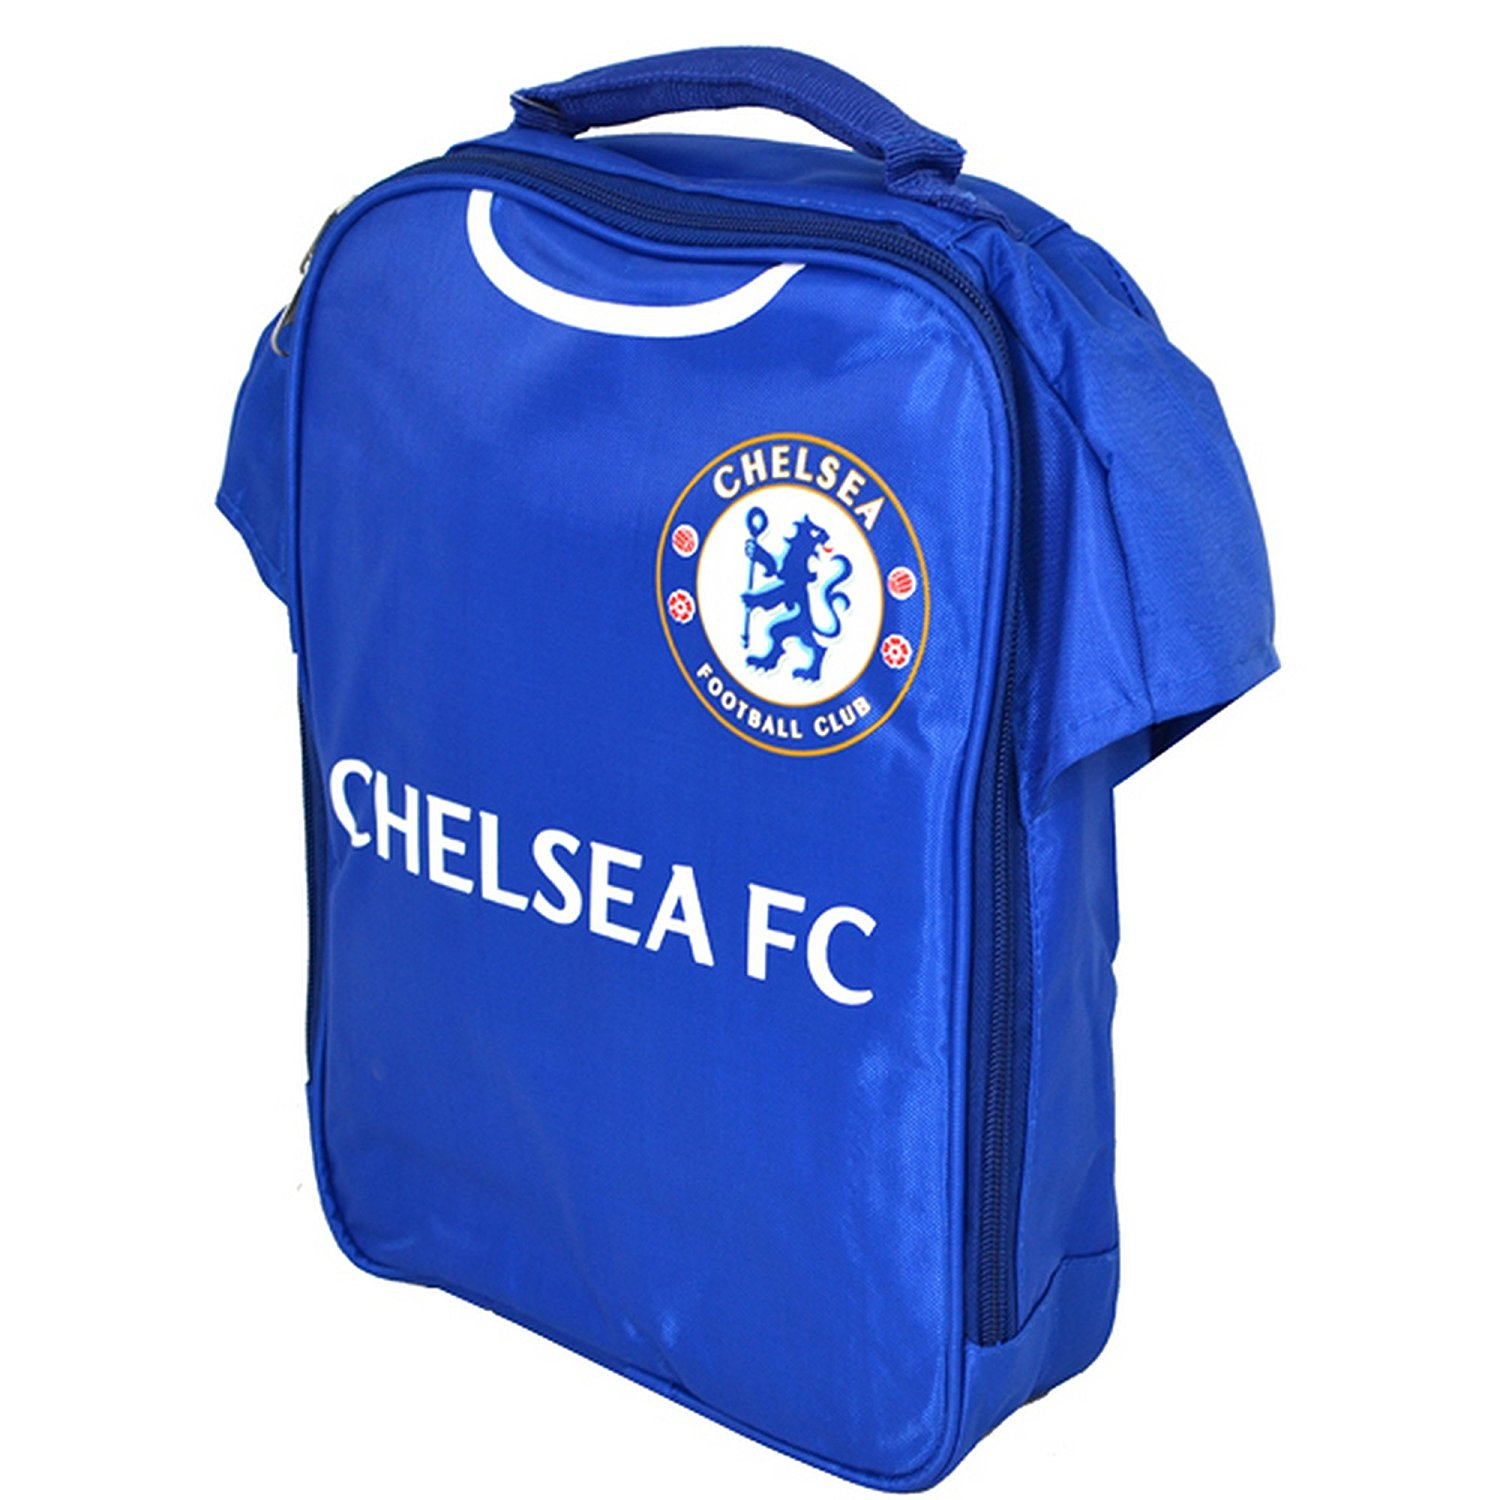 aac4f1de4eef9 Get Quotations · Chelsea FC Official Kit Lunch Bag (One Size) (Blue)